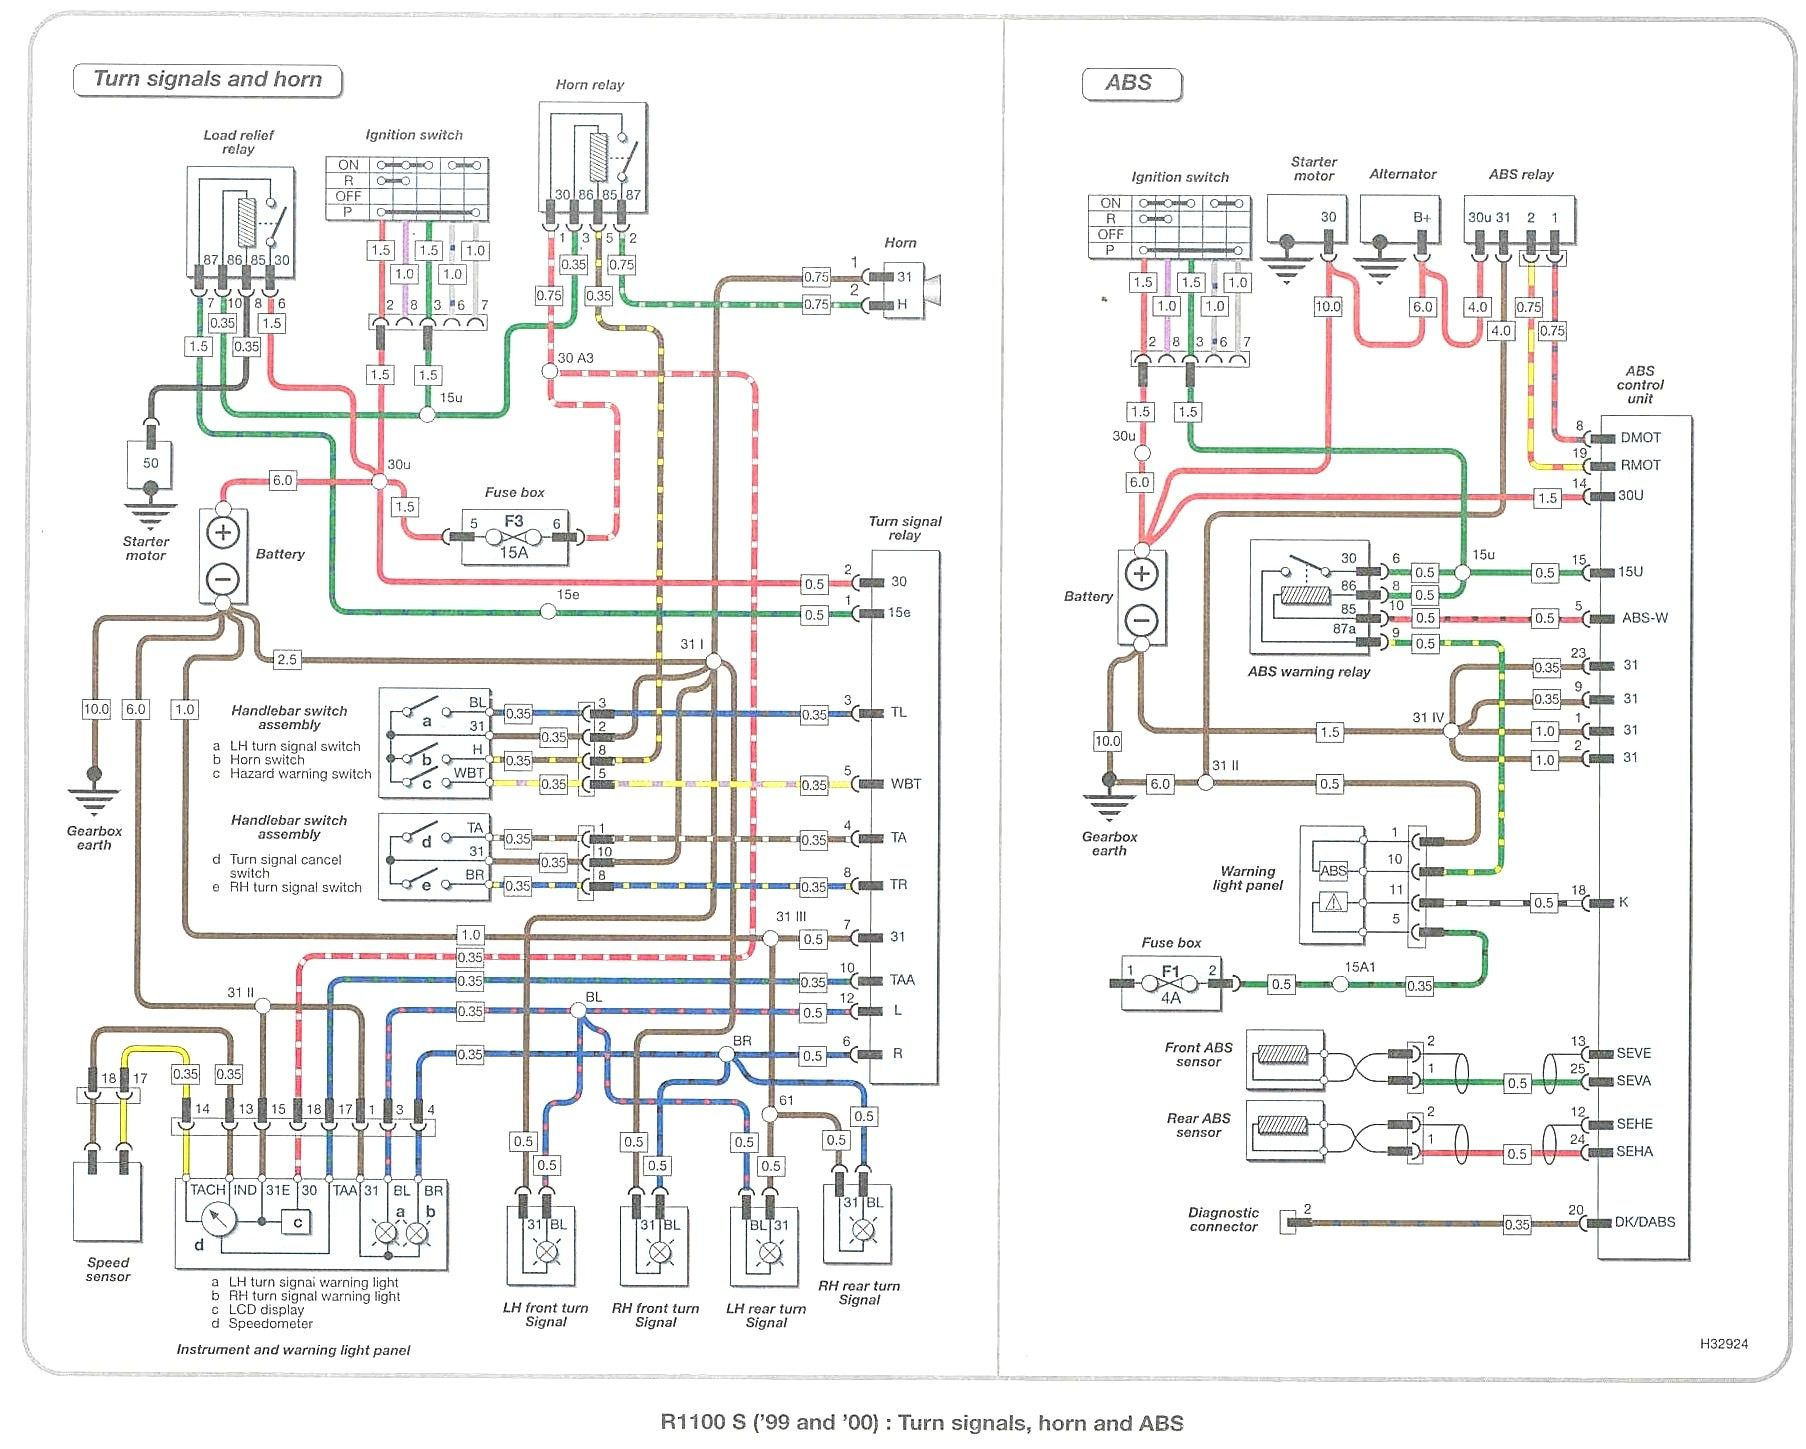 New Bmw E46 Compact Wiring Diagram Diagram Diagramtemplate Diagramsample Bmw Diagrama